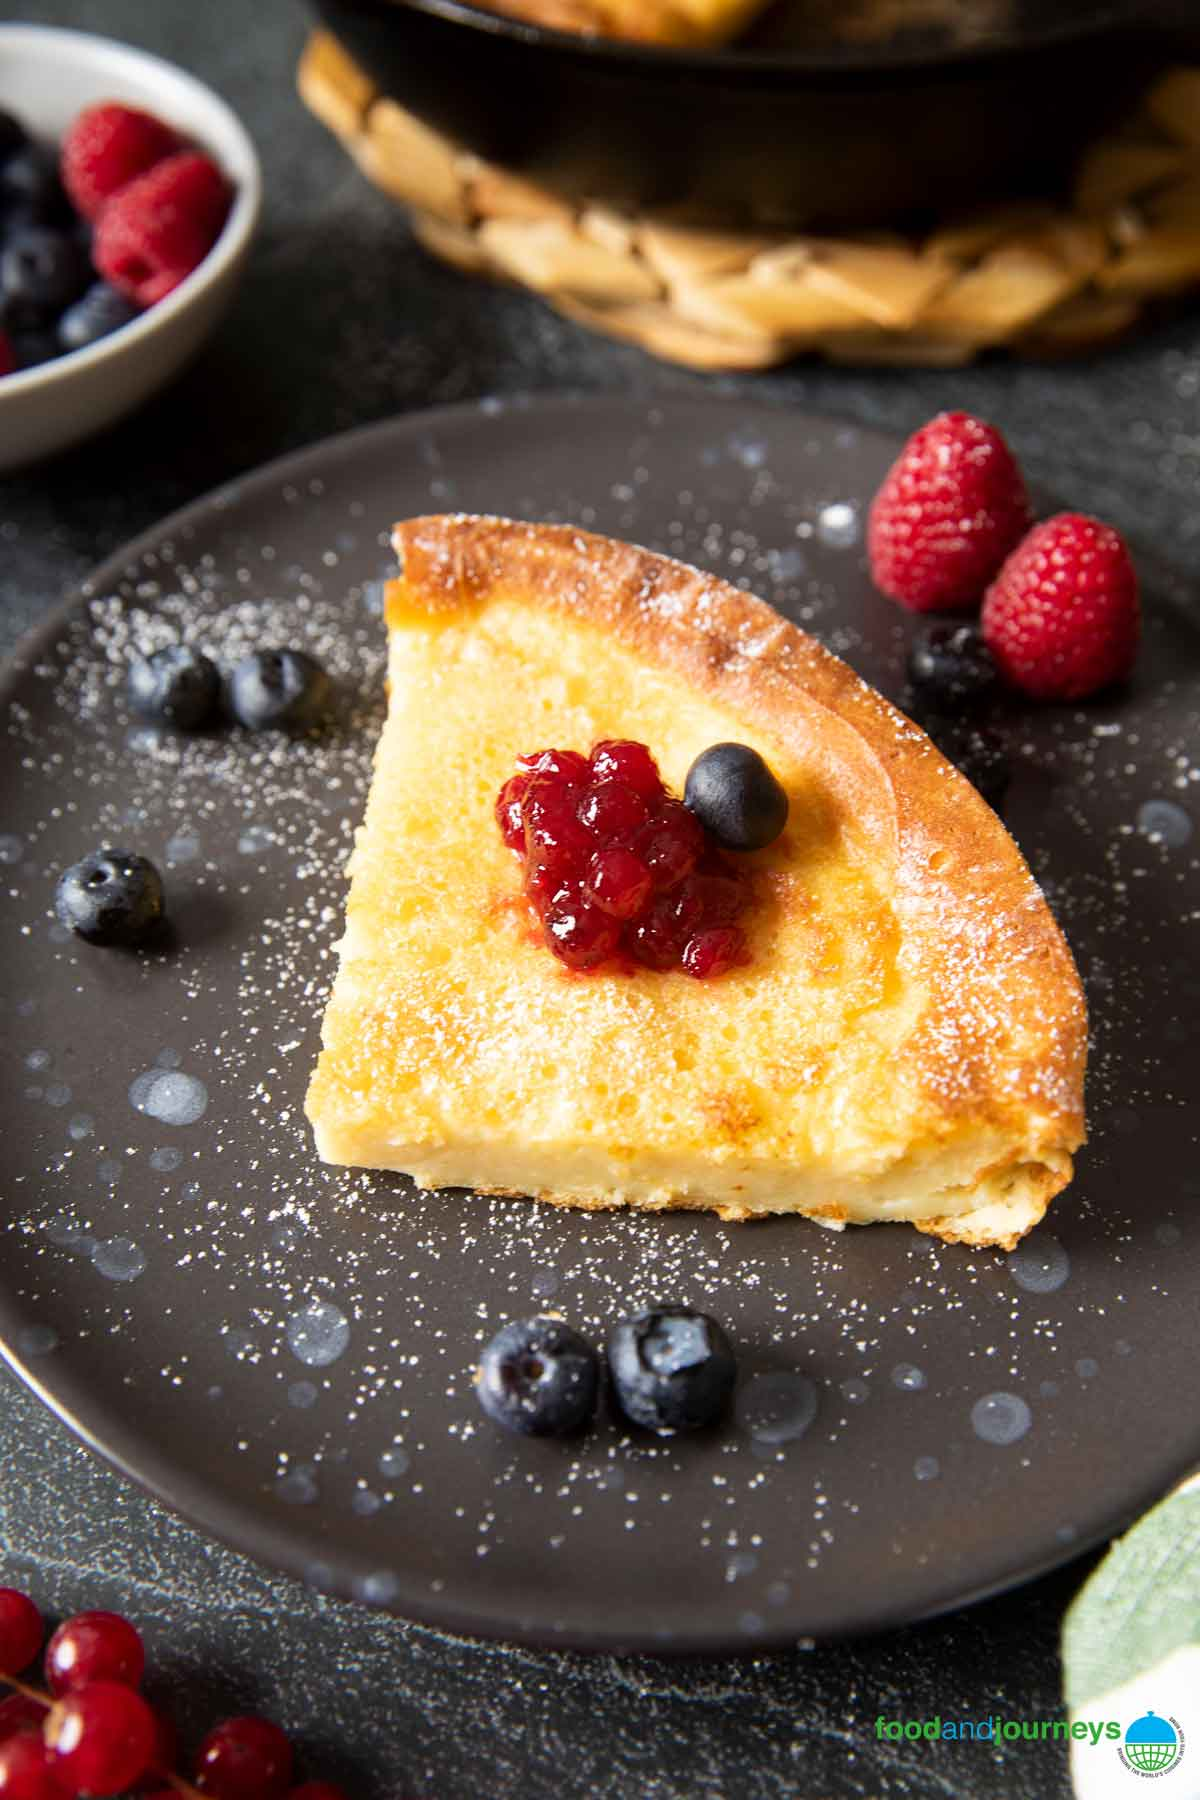 A closer shot of a serving of baked pancake, highlighting the texture inside the pancake, served with fresh fruits and jam.